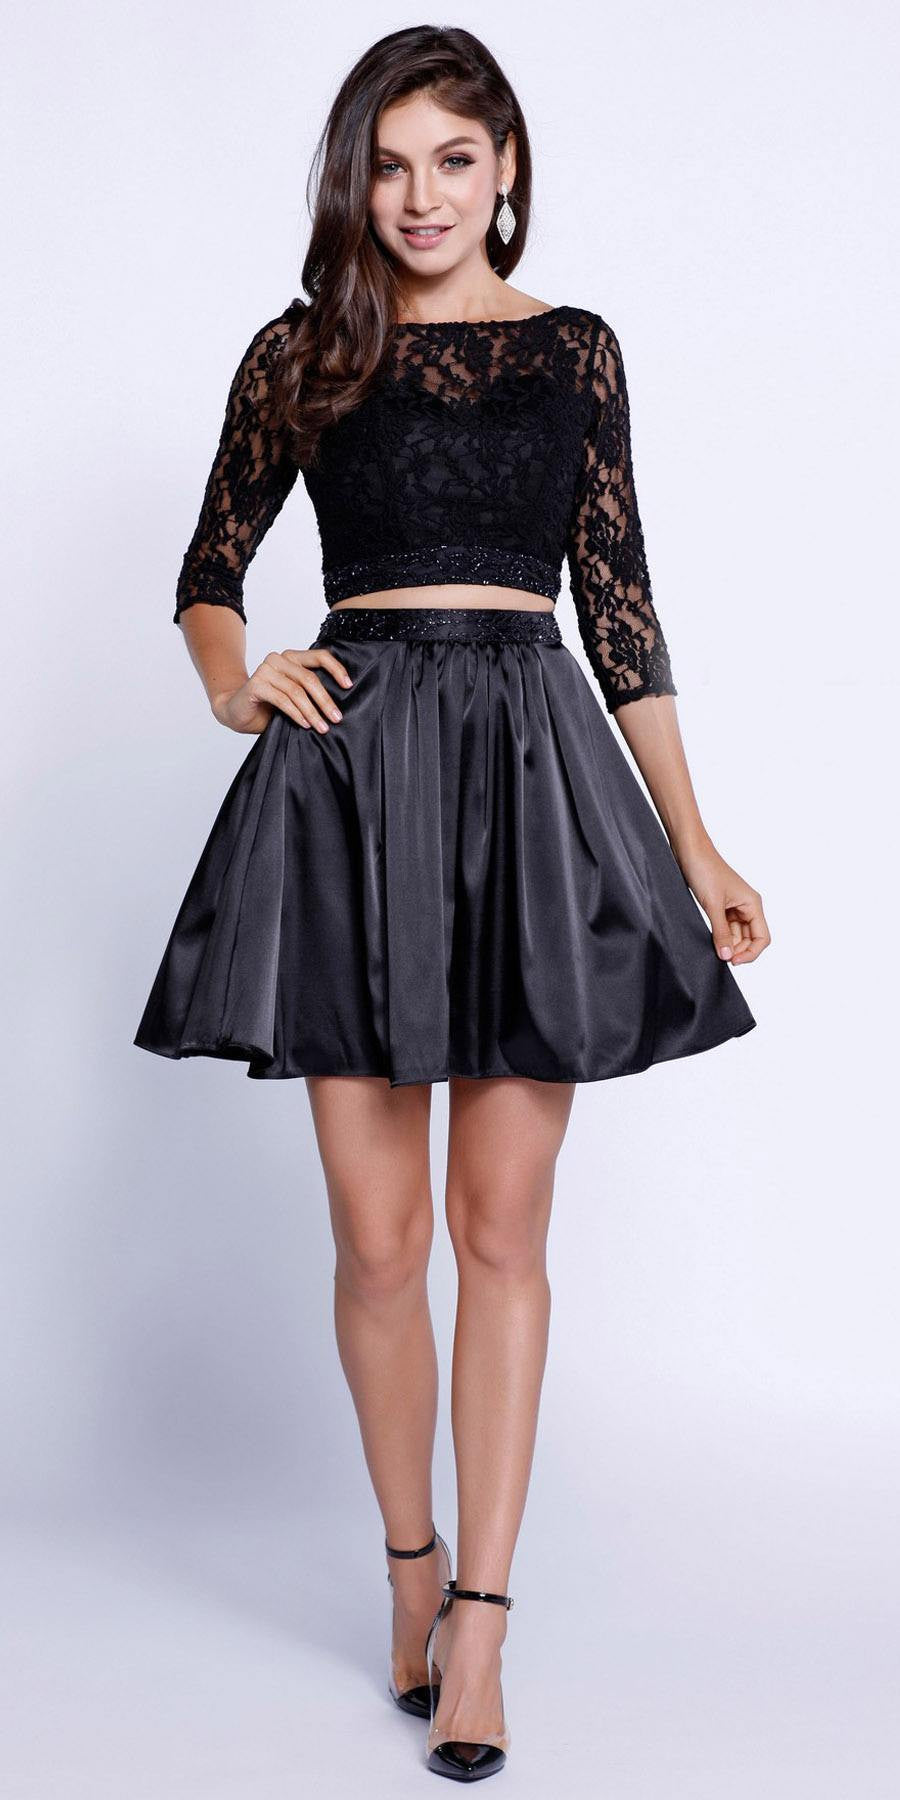 3d03b4f7449 Quarter Sleeves Lace Top Short Two-Piece Prom Dress Black ...